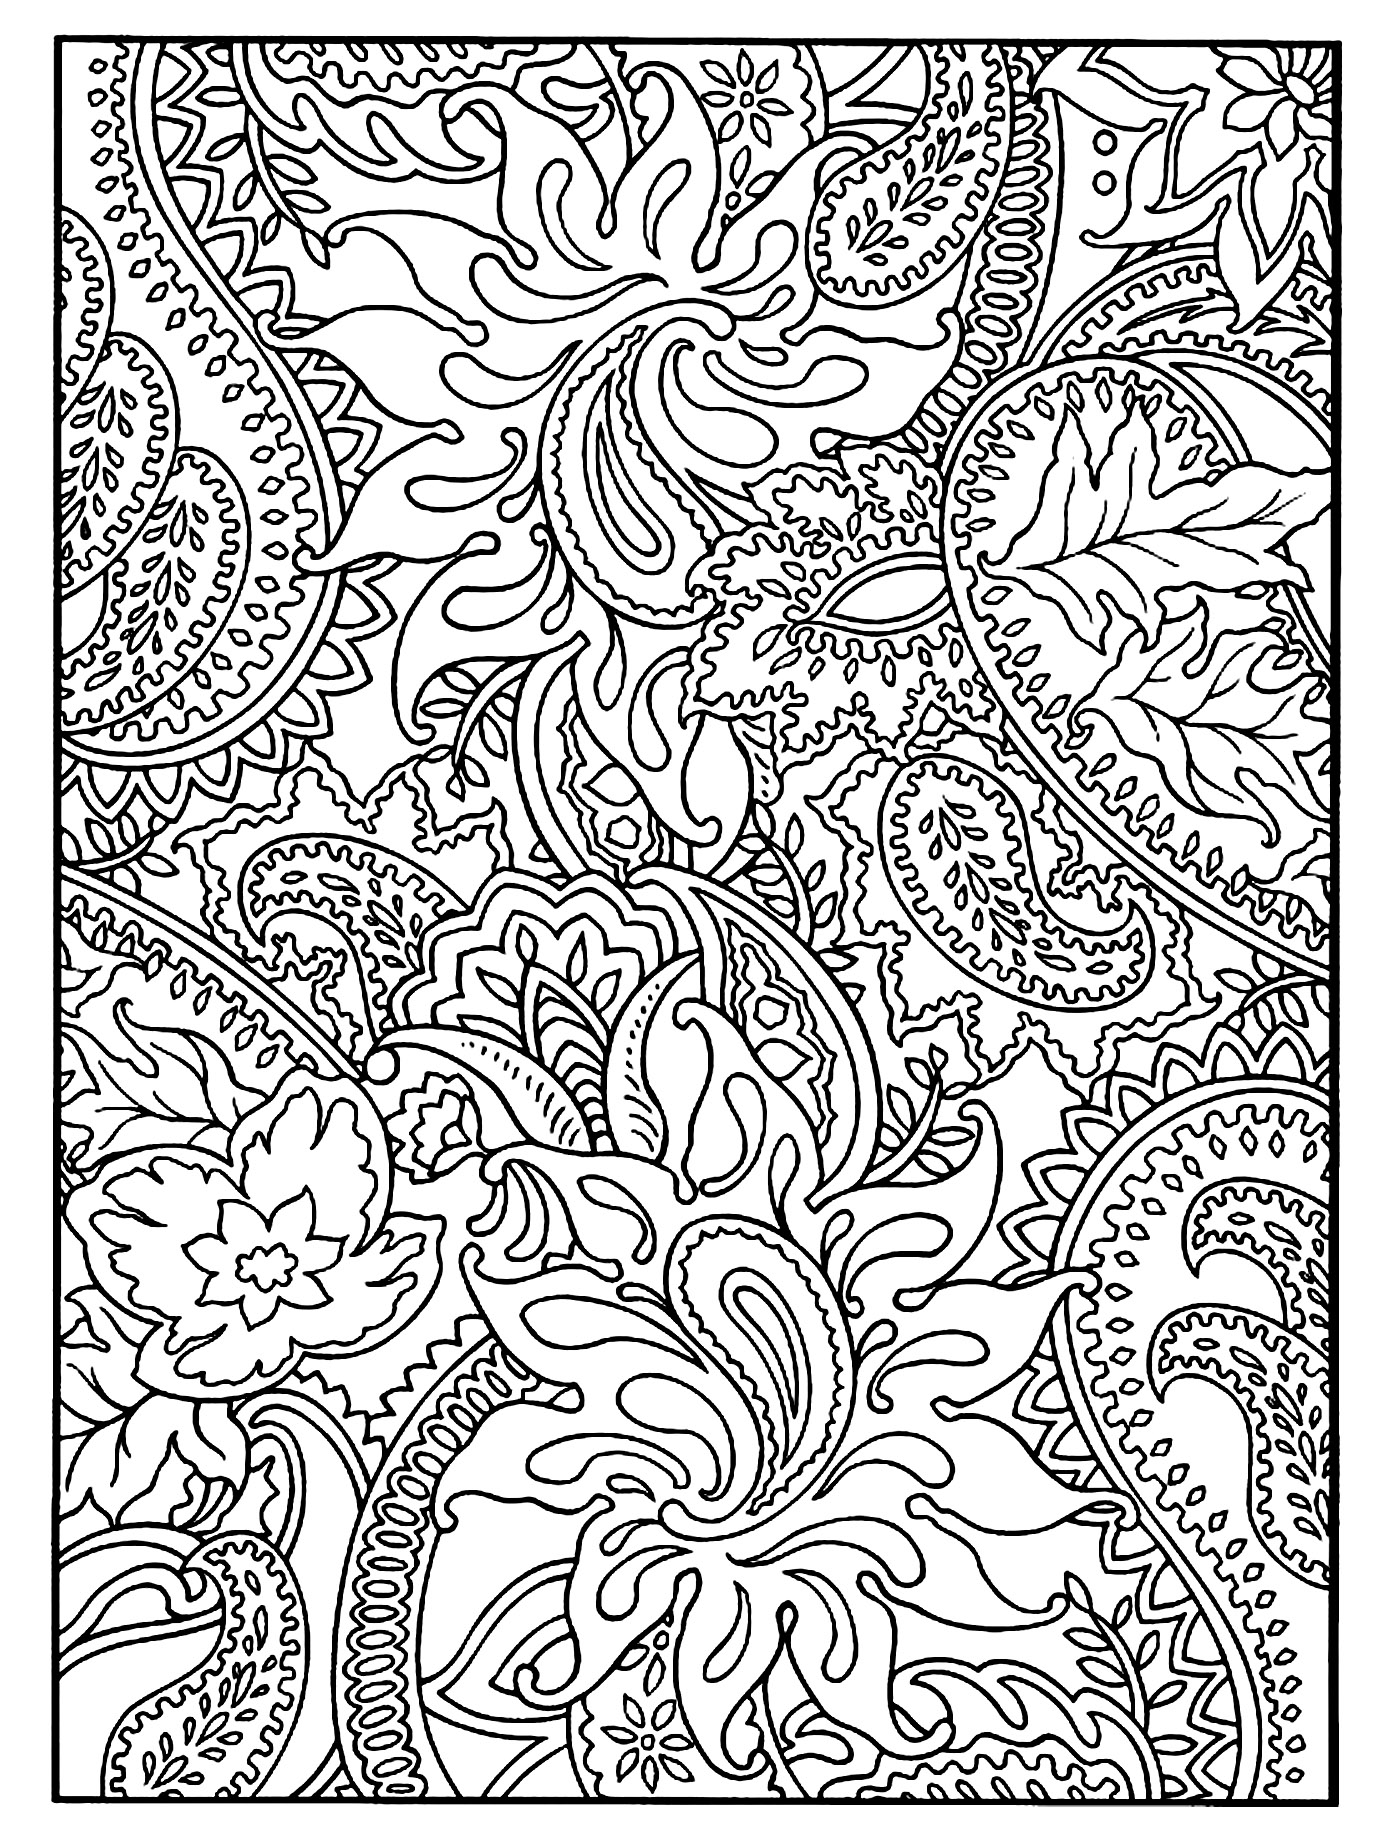 Flowers and harmonious Paisley patterns to color